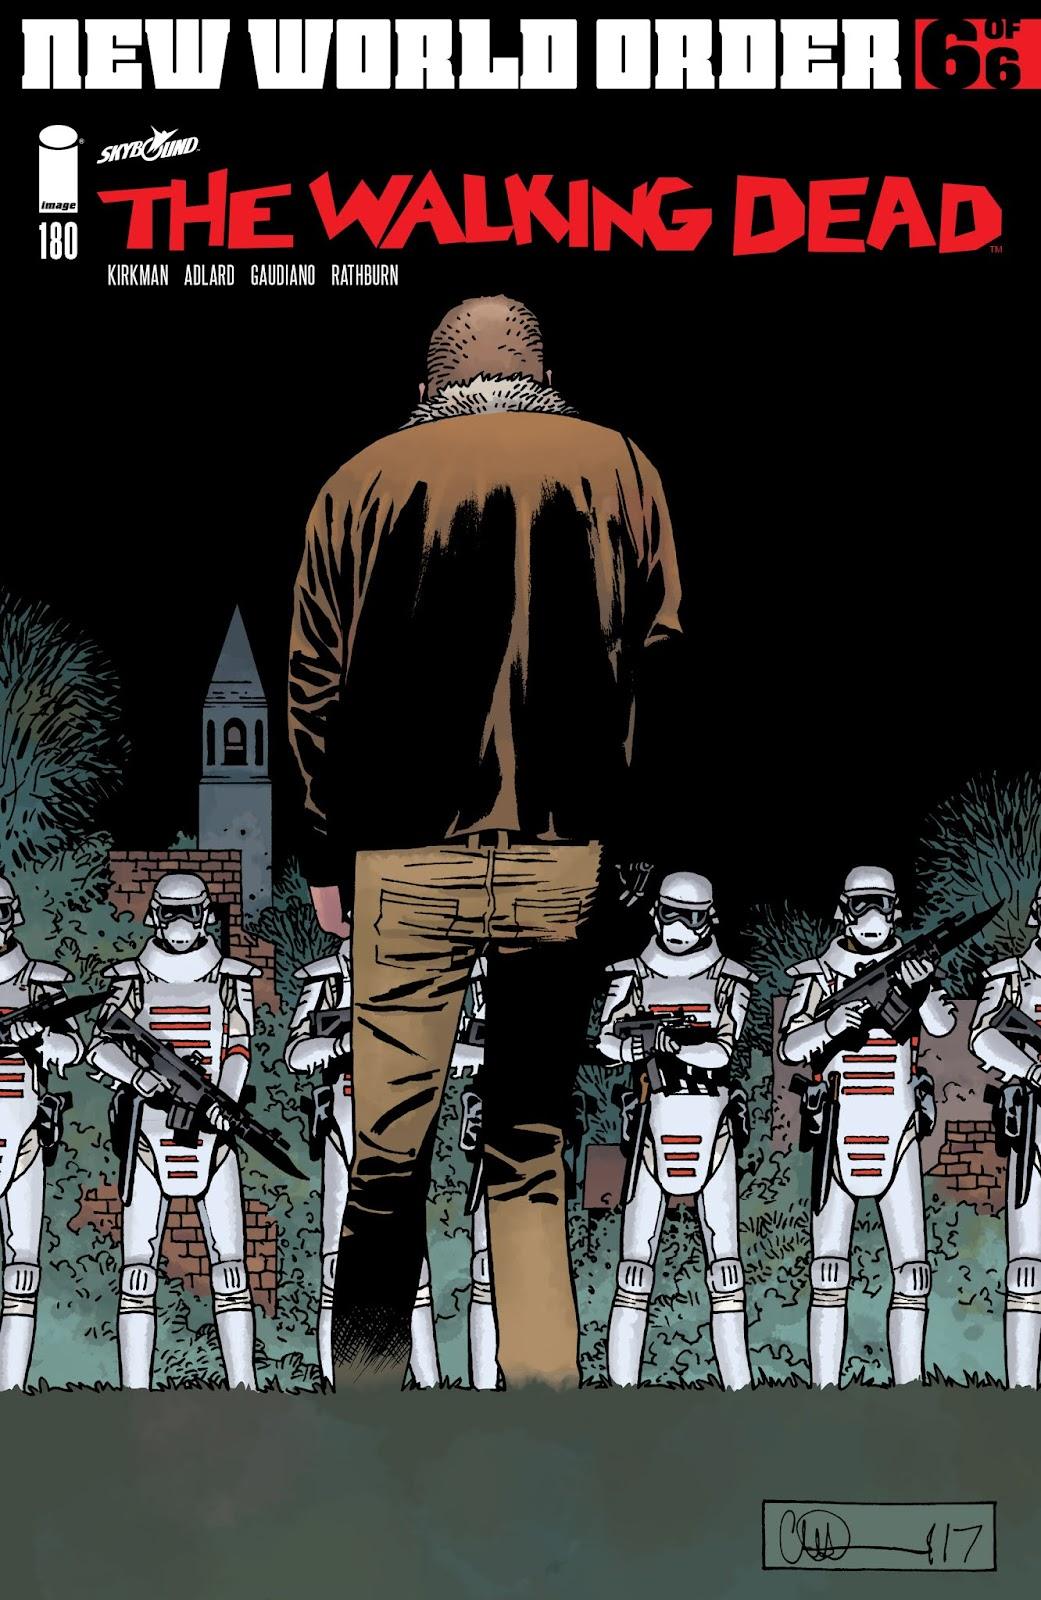 The Walking Dead Issue #180 Page 1